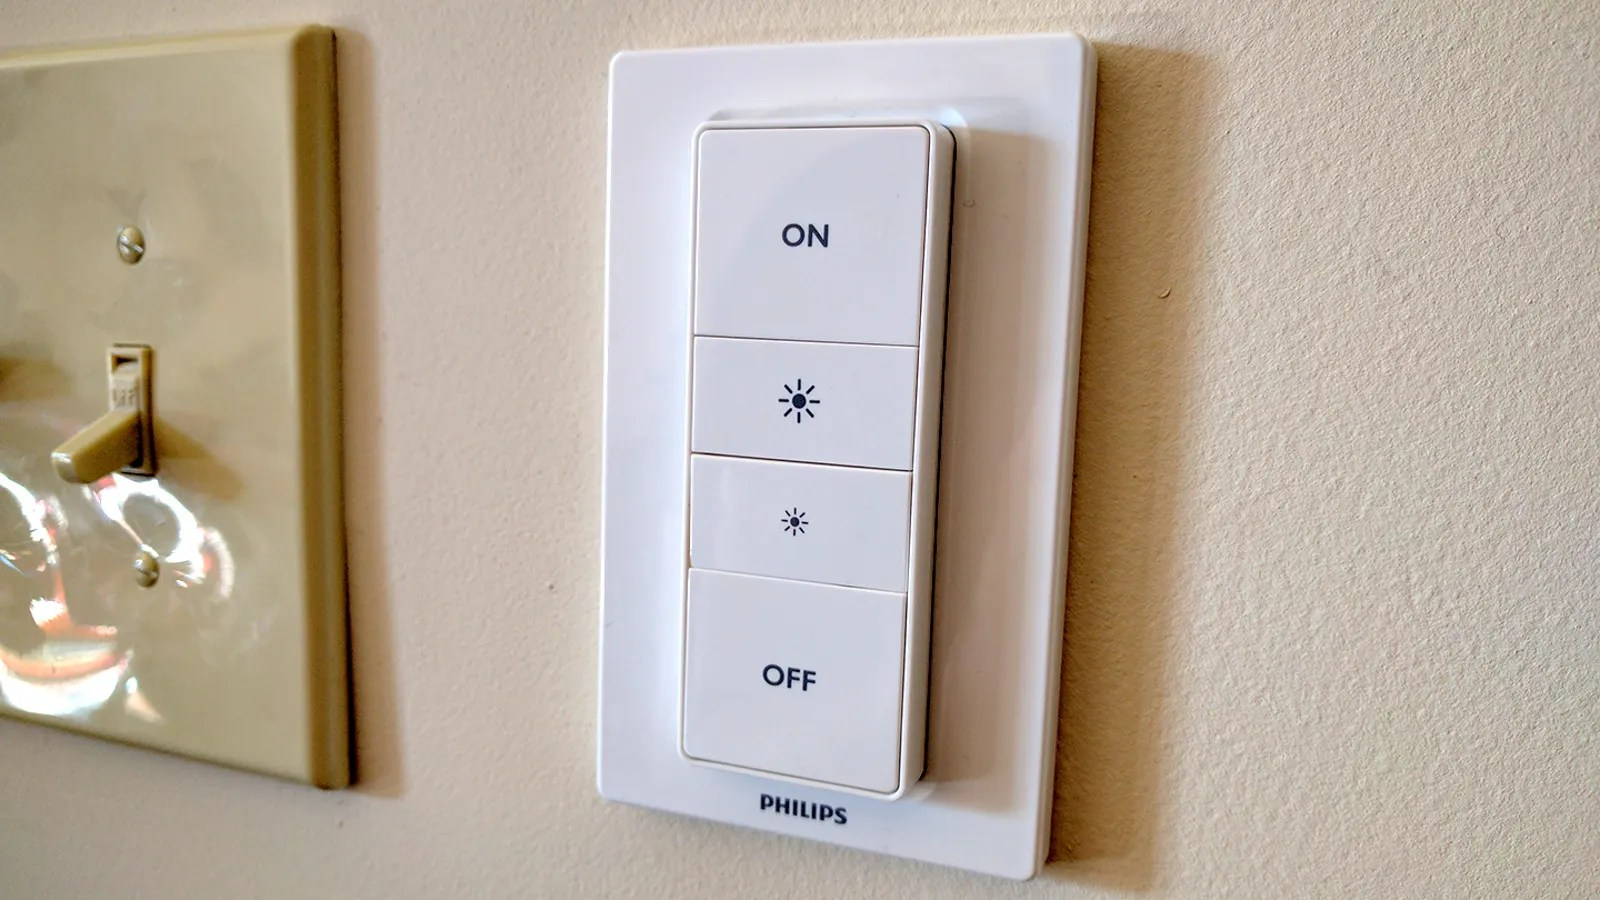 Philips Dimmer The Philips Hue Dimmer Kit Is Landlord Friendly Adds Dimmable